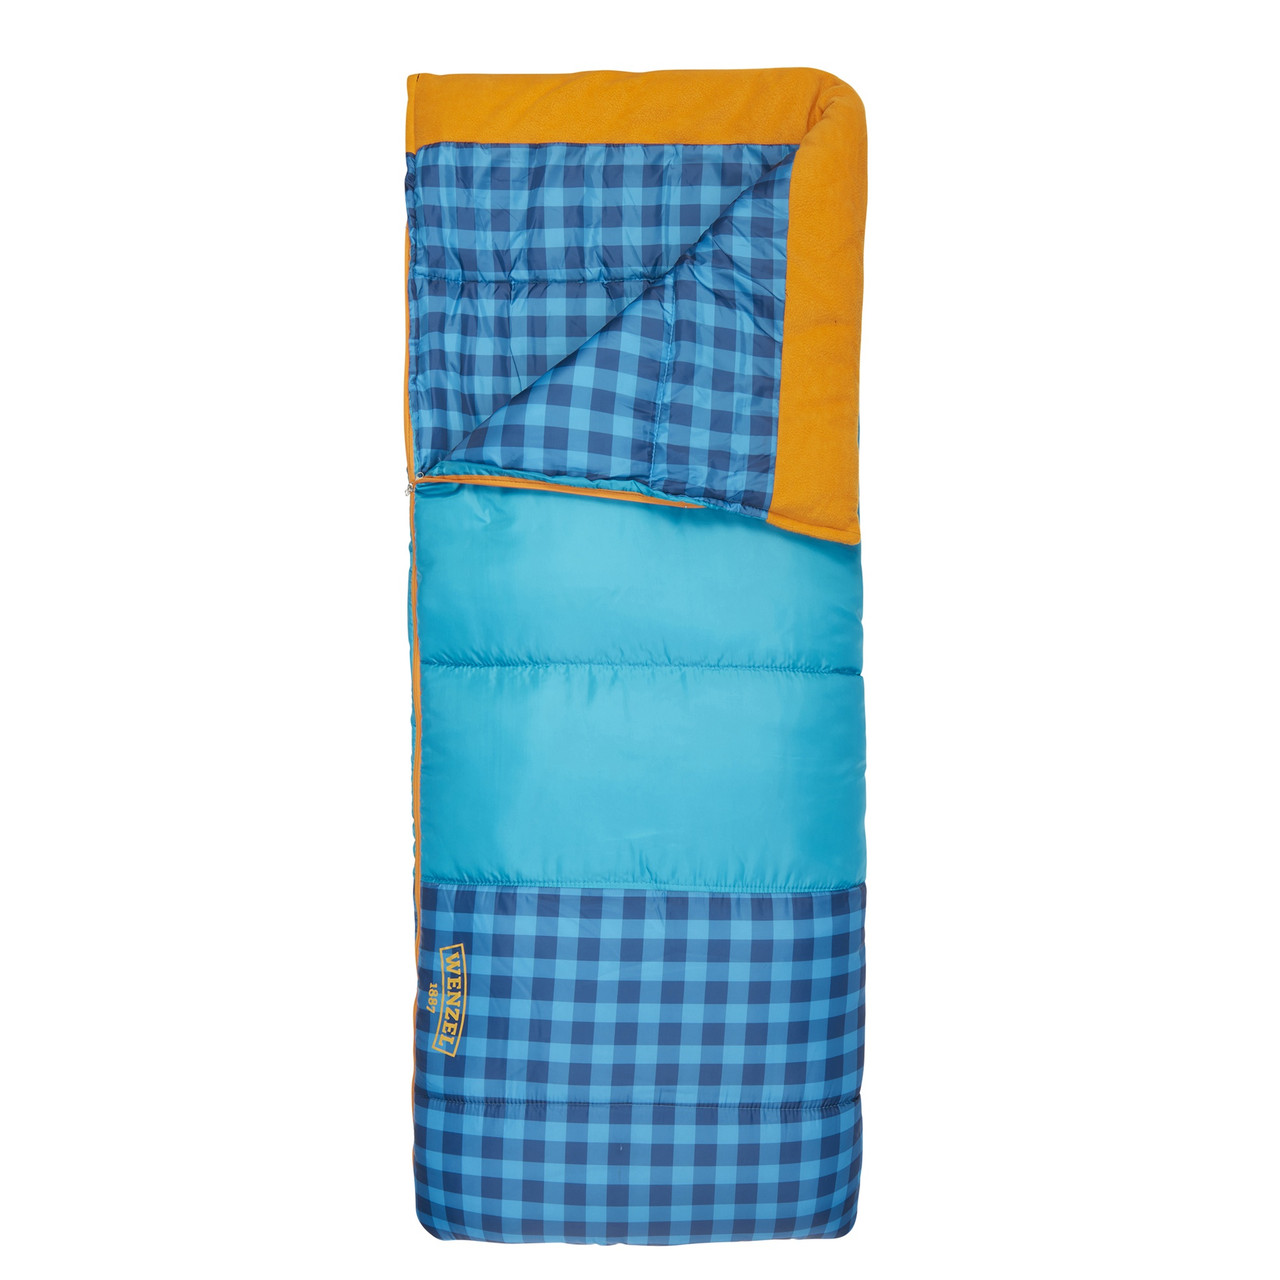 Wenzel Sapling Youth Sleeping Bag, blue, shown partially unzipped